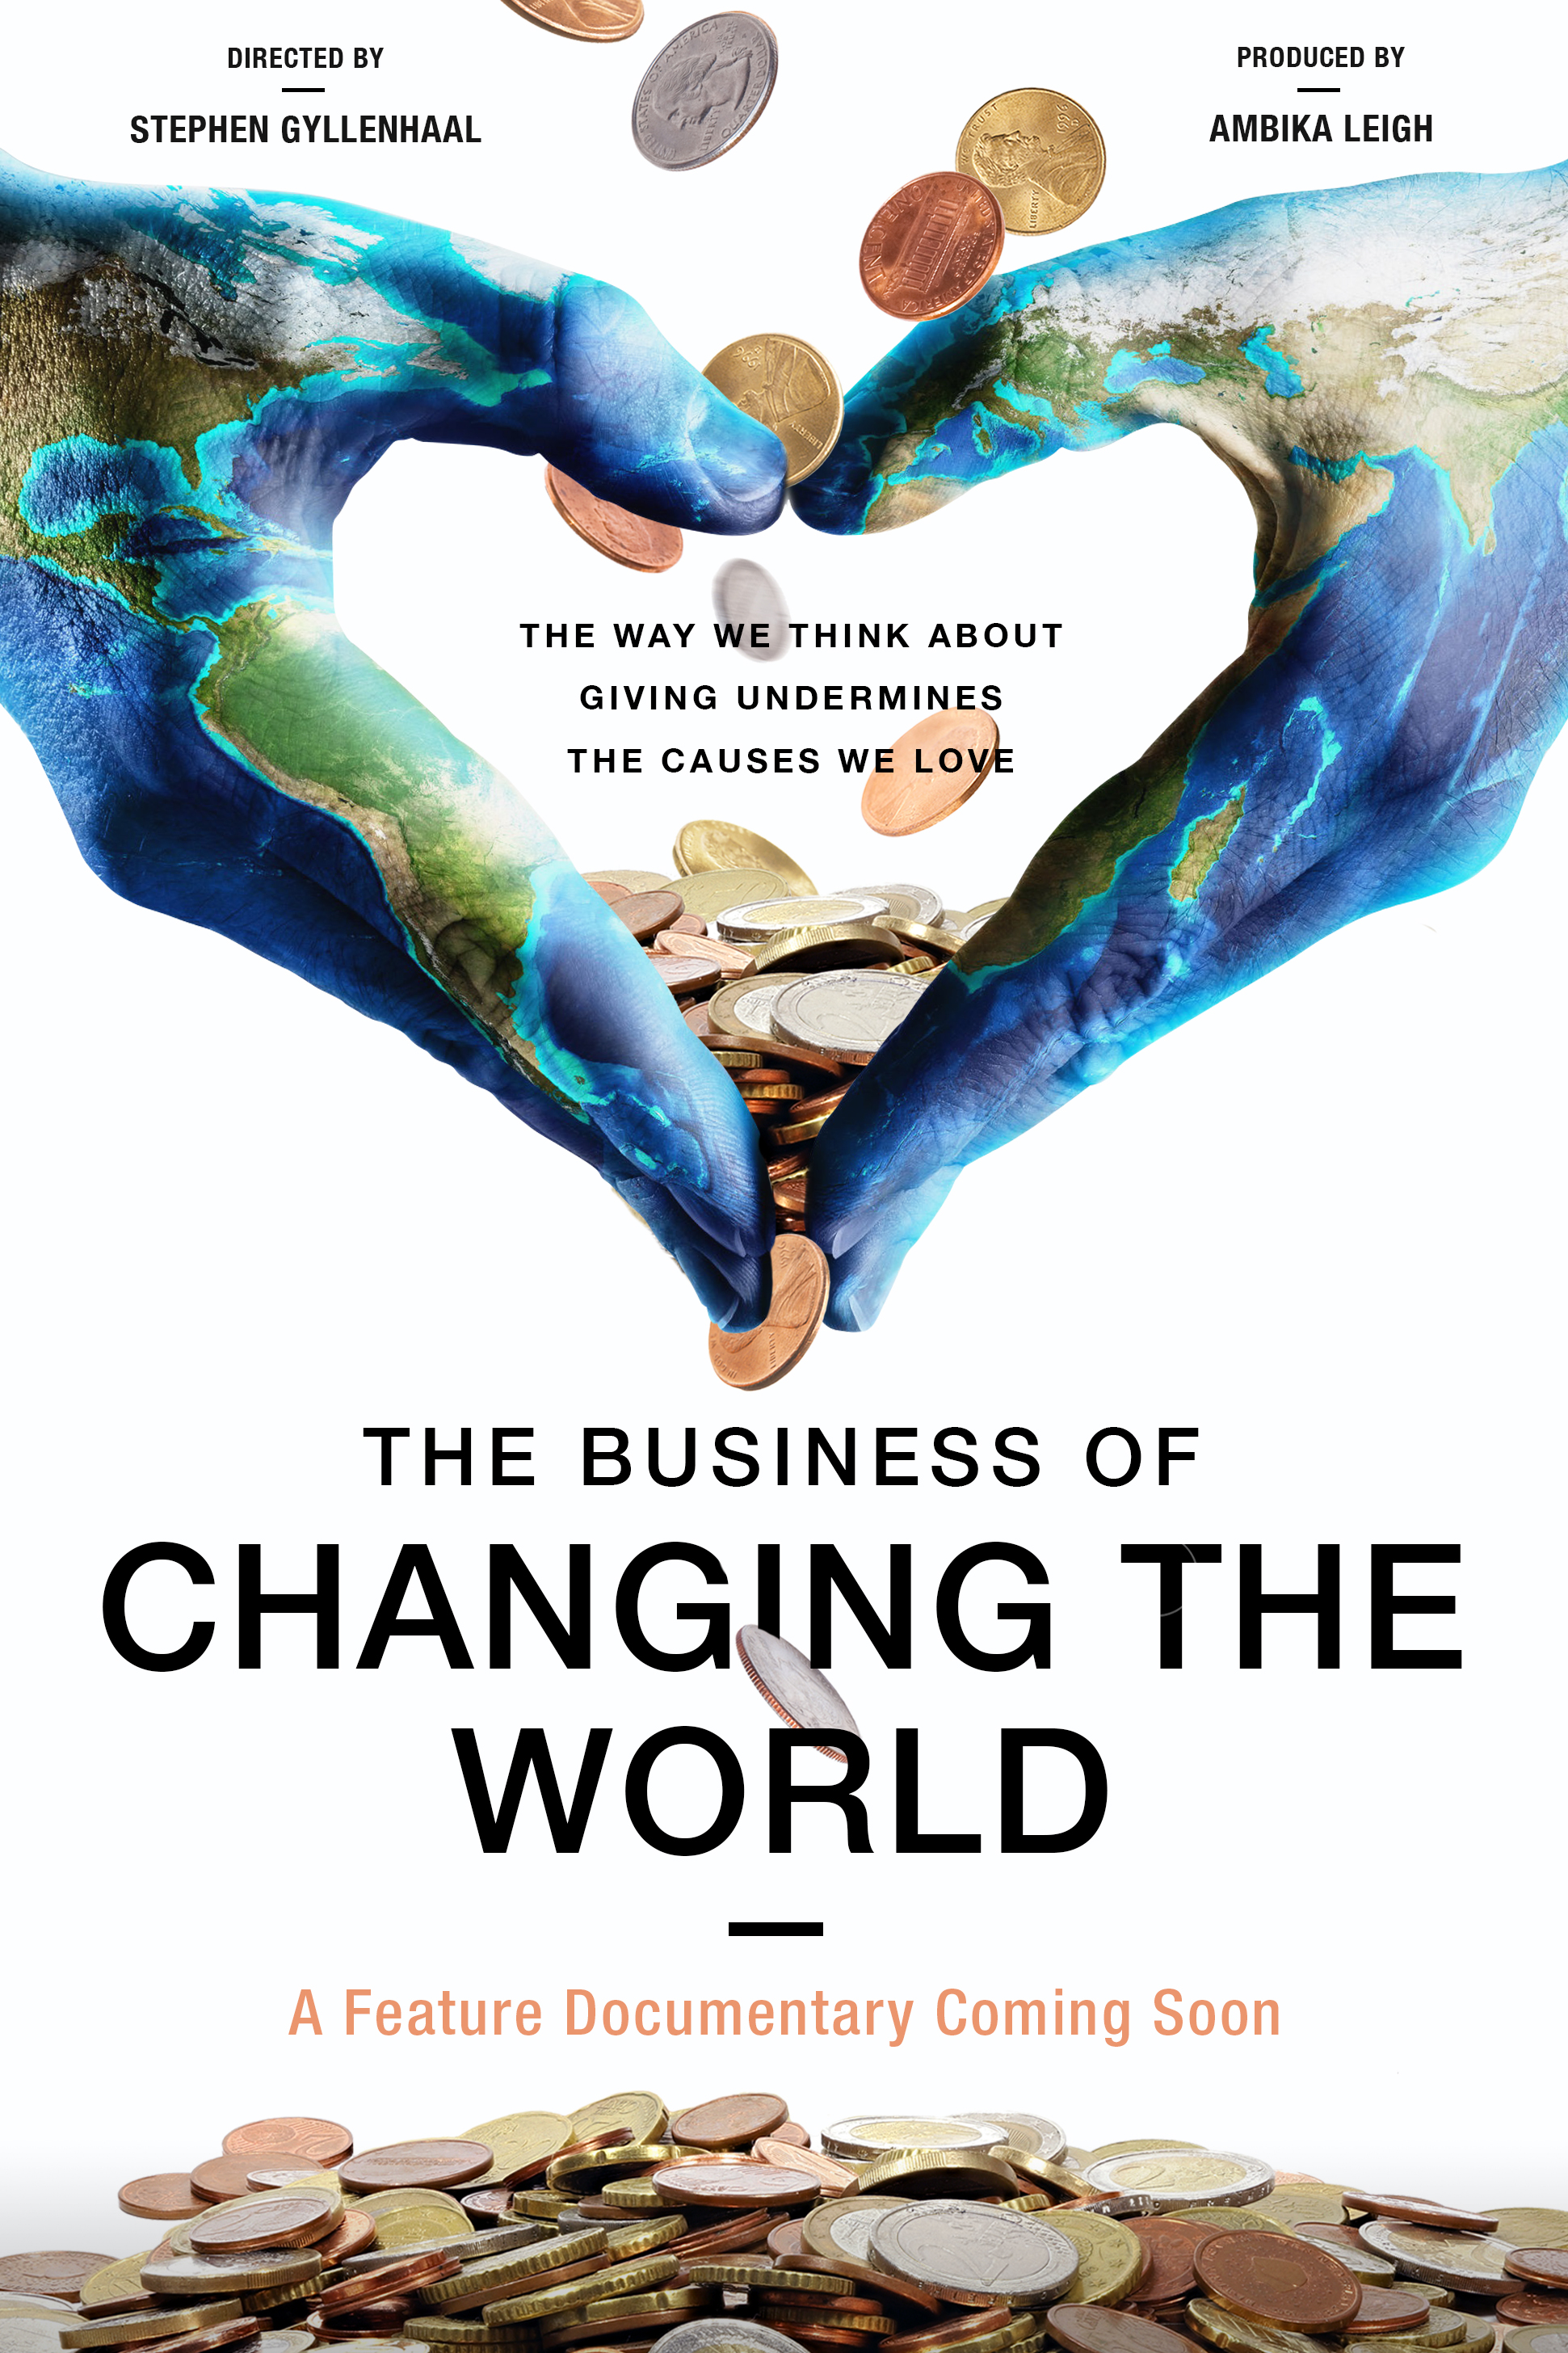 "The Business of Changing the World - (in post-production)Does the way we think about charitable giving undermine the causes we love? The Business of Changing the World is the first feature documentary to take a bold and heartfelt look at the nonprofit sector, the archaic restrictions it faces, the controversial issues that surround charitable funding and operations, and the unintended consequences of a well-meaning but misinformed public that sabotage their ability to truly make a difference.Based on the life's work of nonprofit activist Dan Pallotta, including his books ""Uncharitable"" and ""Charity Case,"" and influential TED Talk ""The Way We Think About Charity Is Dead Wrong,"" this unprecedented documentary aims to change how we think about changing the world. The motto of YWCA Metropolitan Chicago CEO, Dorri McWhorter, one of the film's featured changemakers, sums it up well: ""Nonprofit is a tax status, not a business model.""There are documentaries on every conceivable issue of social concern from environmental injustice to gun violence to systemic poverty, but not on the common denominator - the structural dysfunction - that prevents nonprofits from really addressing these issues. Until now. The Business of Changing the World is a film that inspires us all to do better, dream bigger, and expect bigger results."